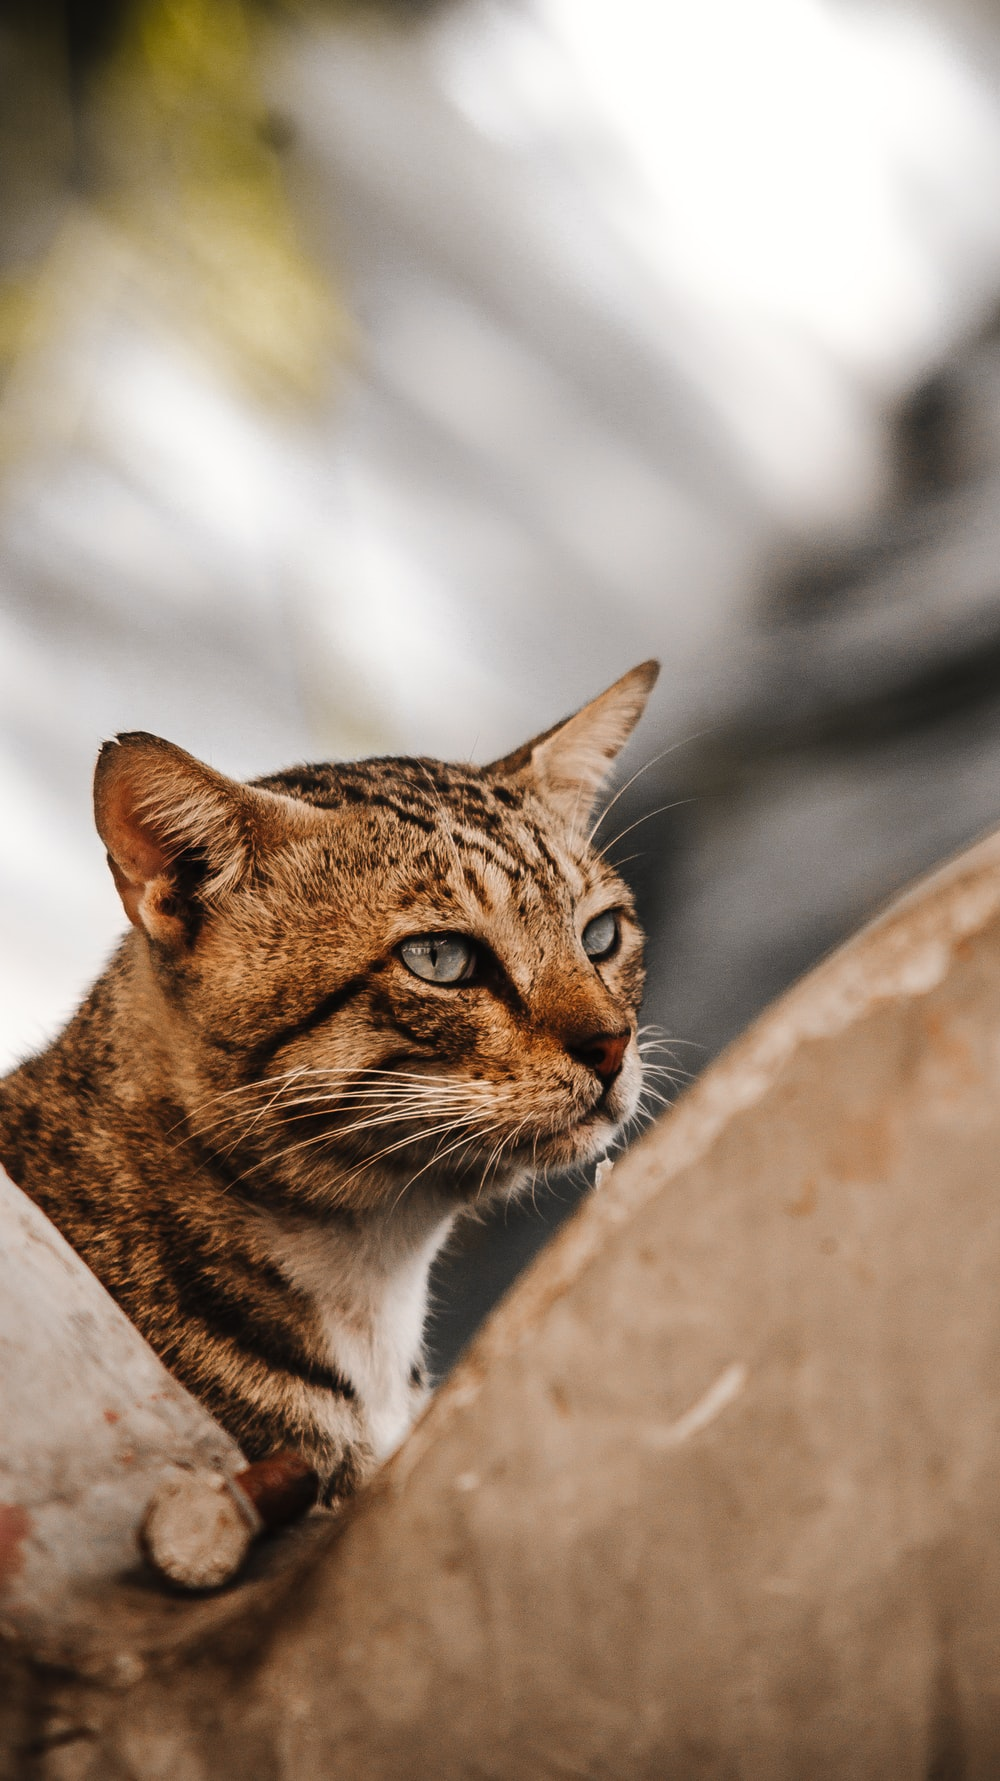 brown cat in close-up photo